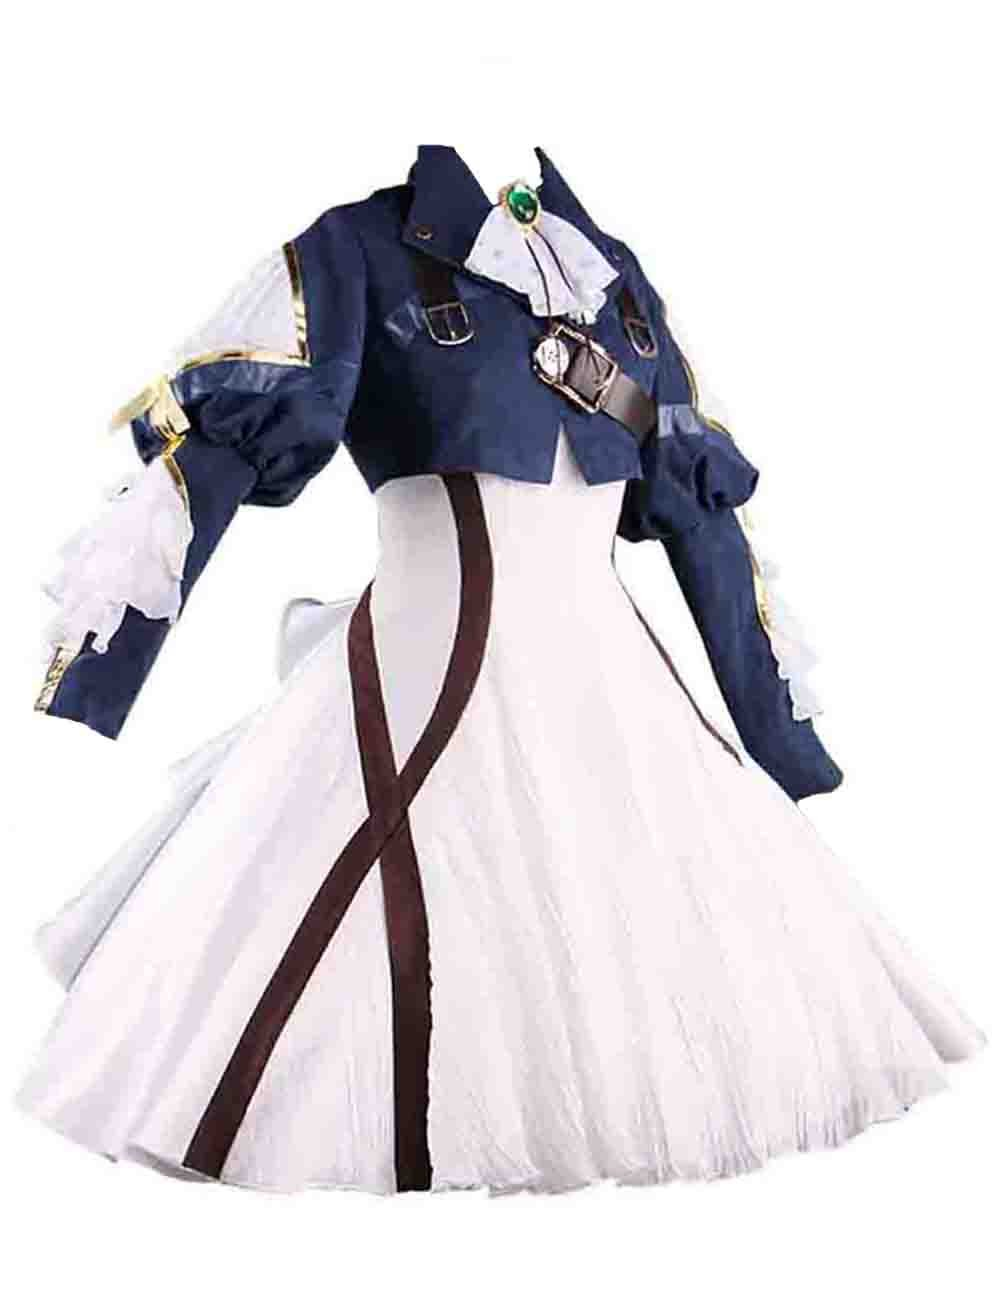 Ainiel Womens Costume Cosplay Anime Uniform Suit Dress Outfit Dark Blue White (L)